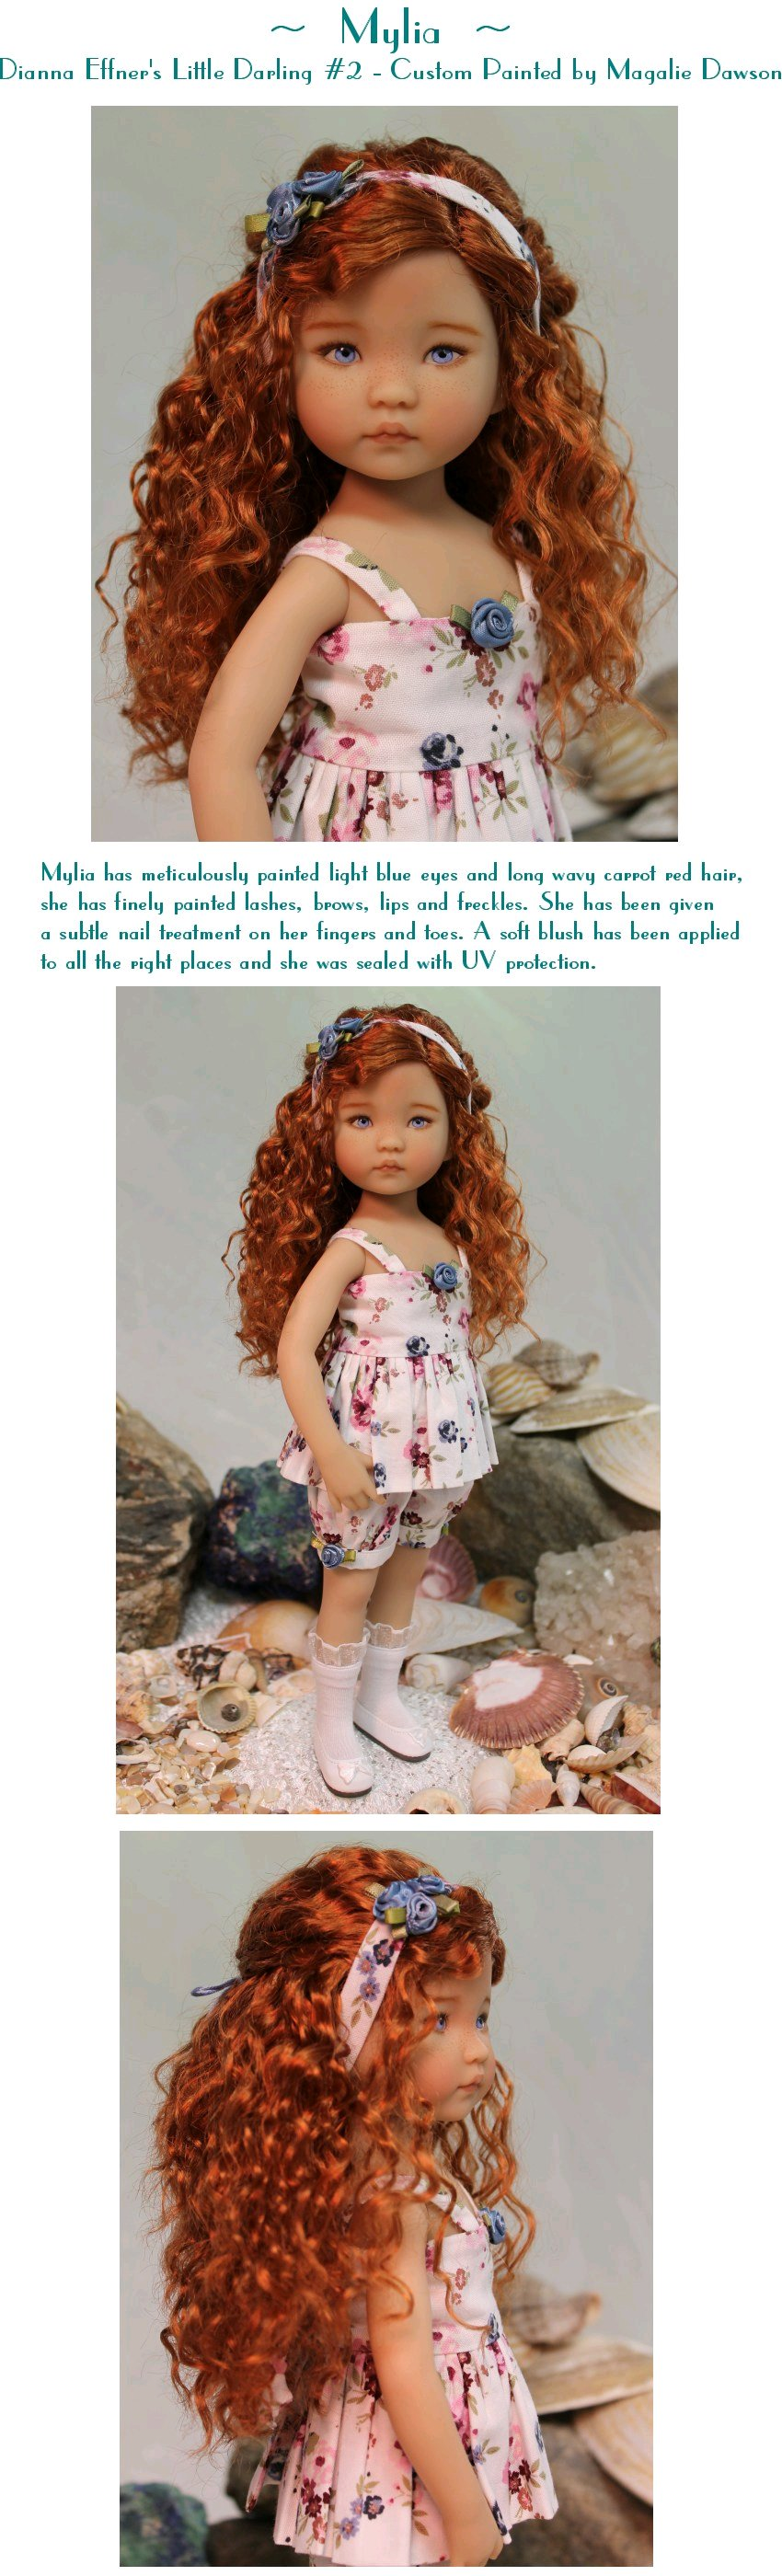 Mylia - Dianna Effner's Little Darling #2 Painted by Magalie Dawson